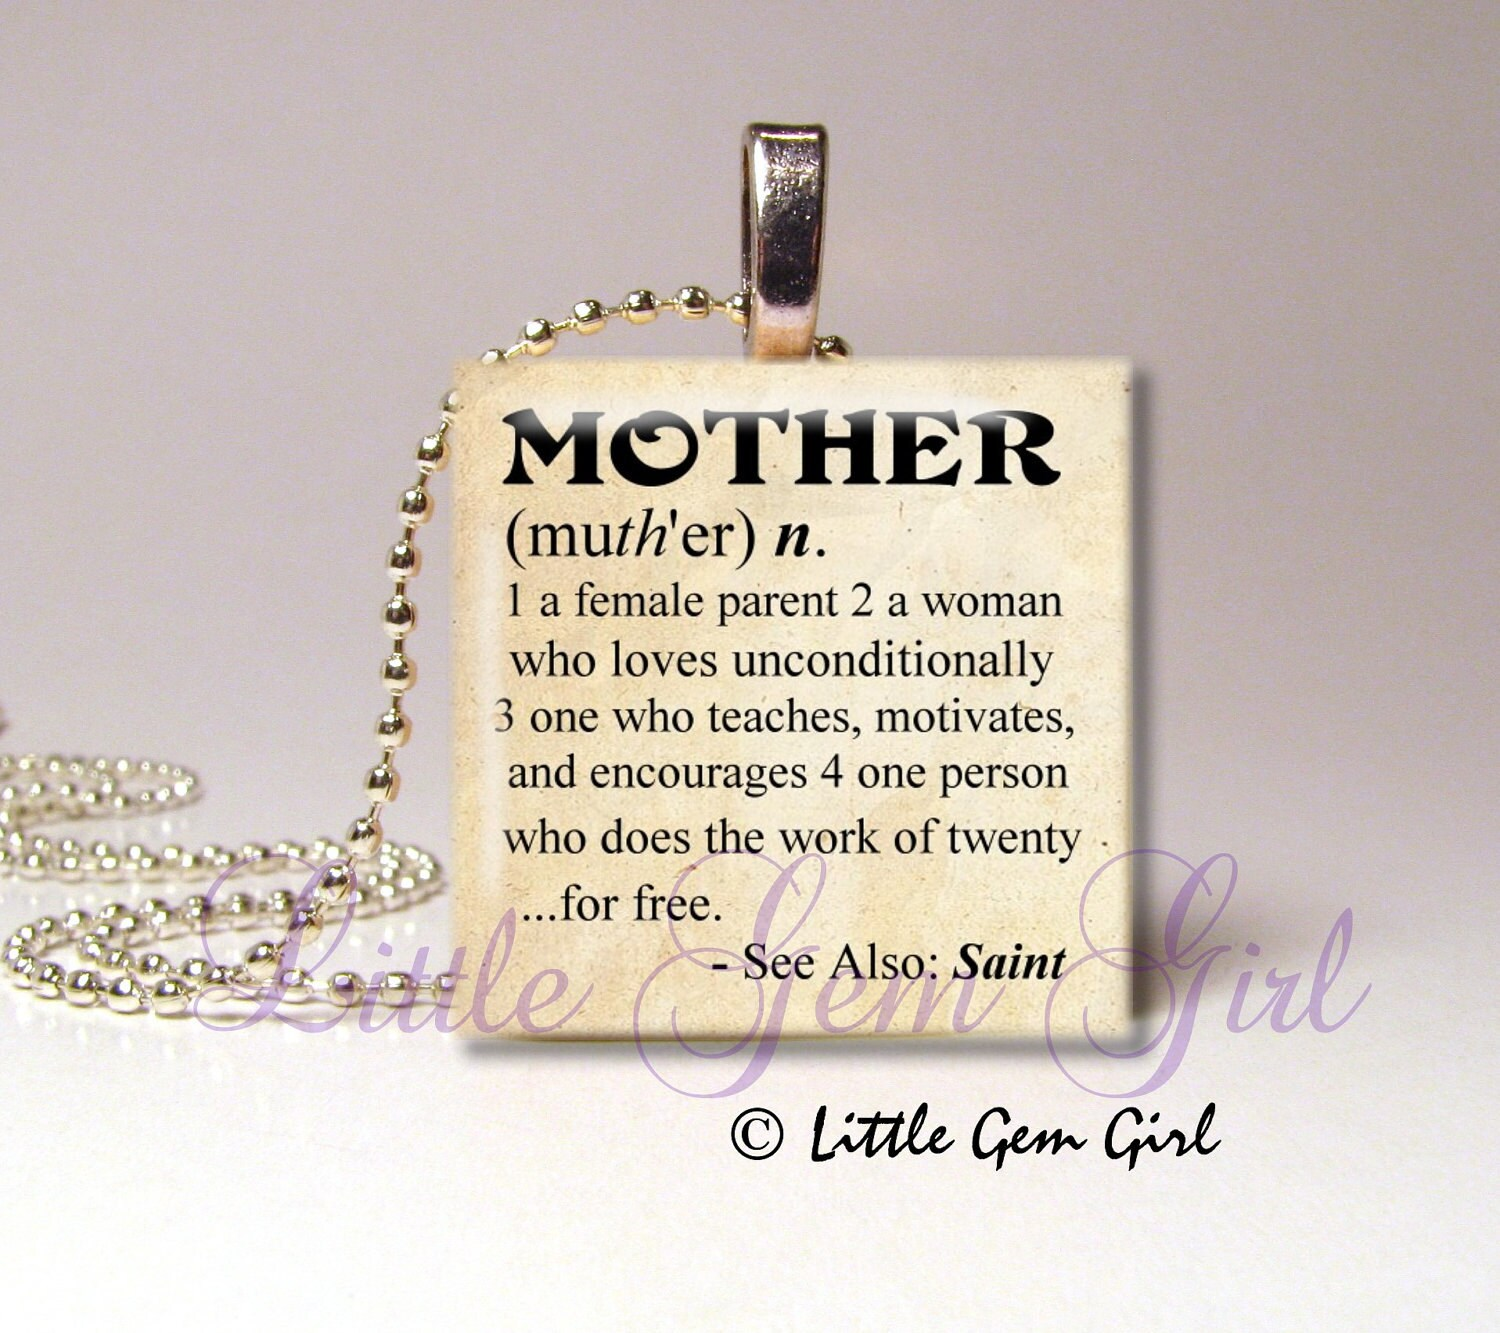 mother definition Mother - a woman who gave birth and looks after her child/ children.